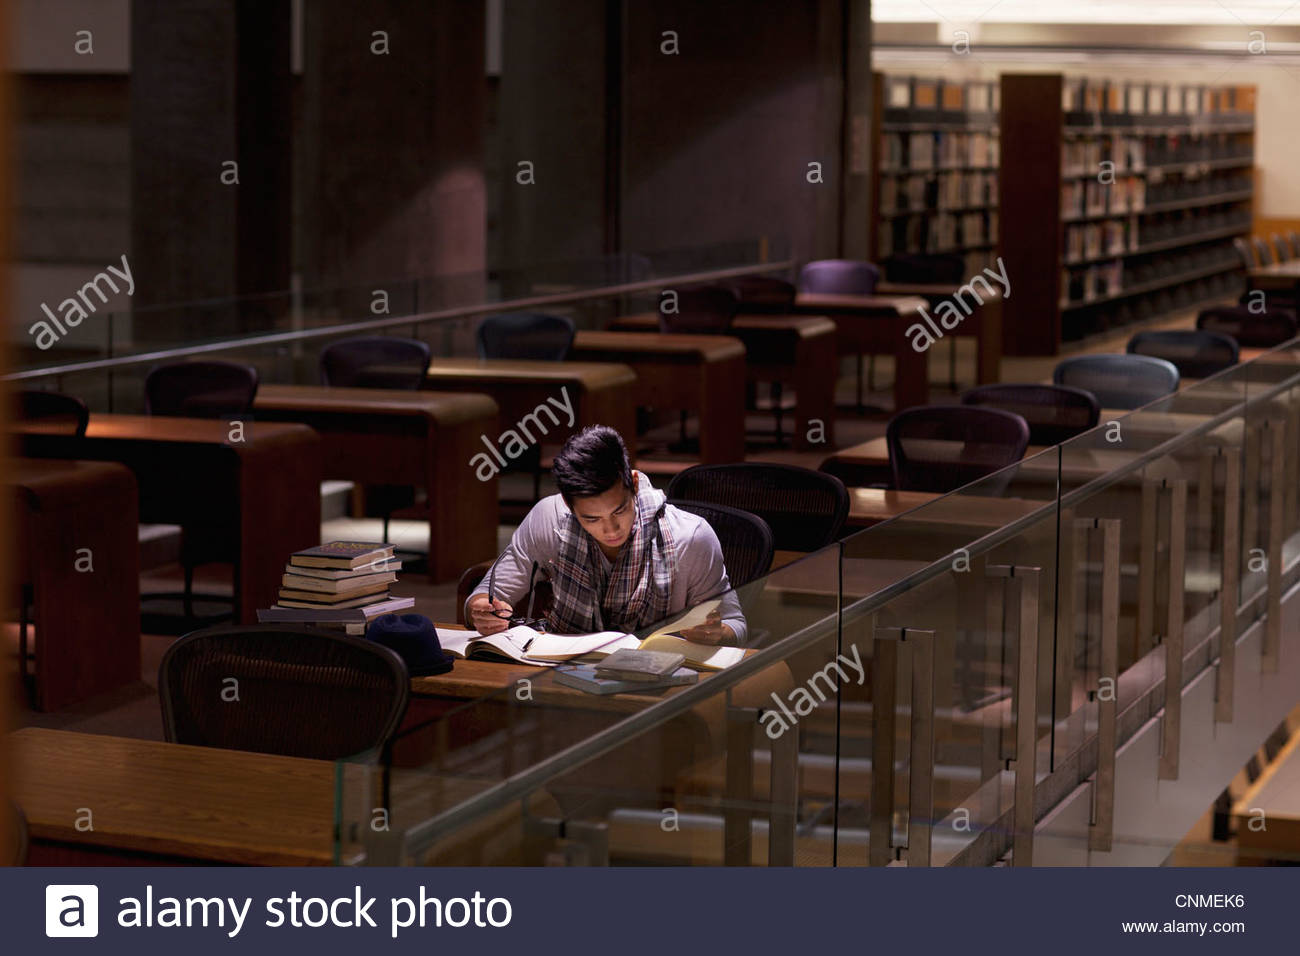 Student working in library at night - Stock Image